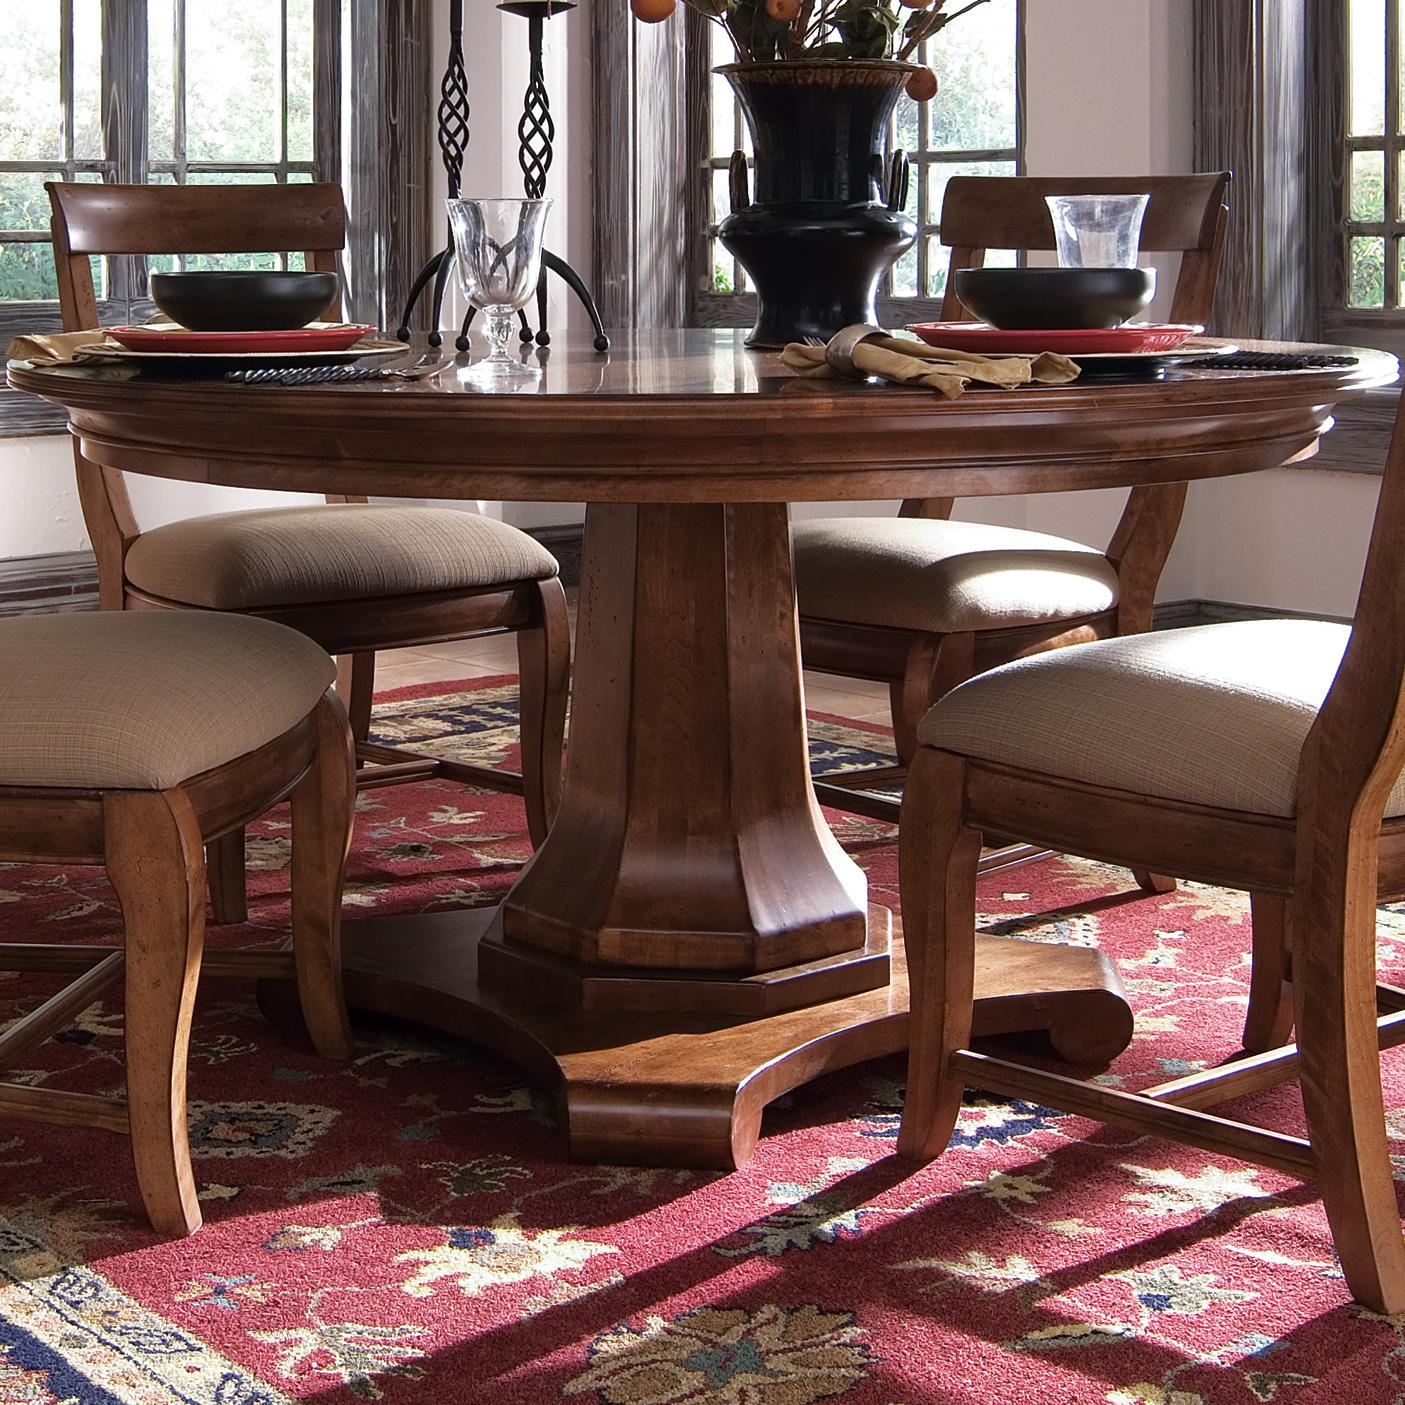 Round Dining Table By Kincaid Furniture Wolf And Gardiner - Kincaid tuscano bedroom furniture